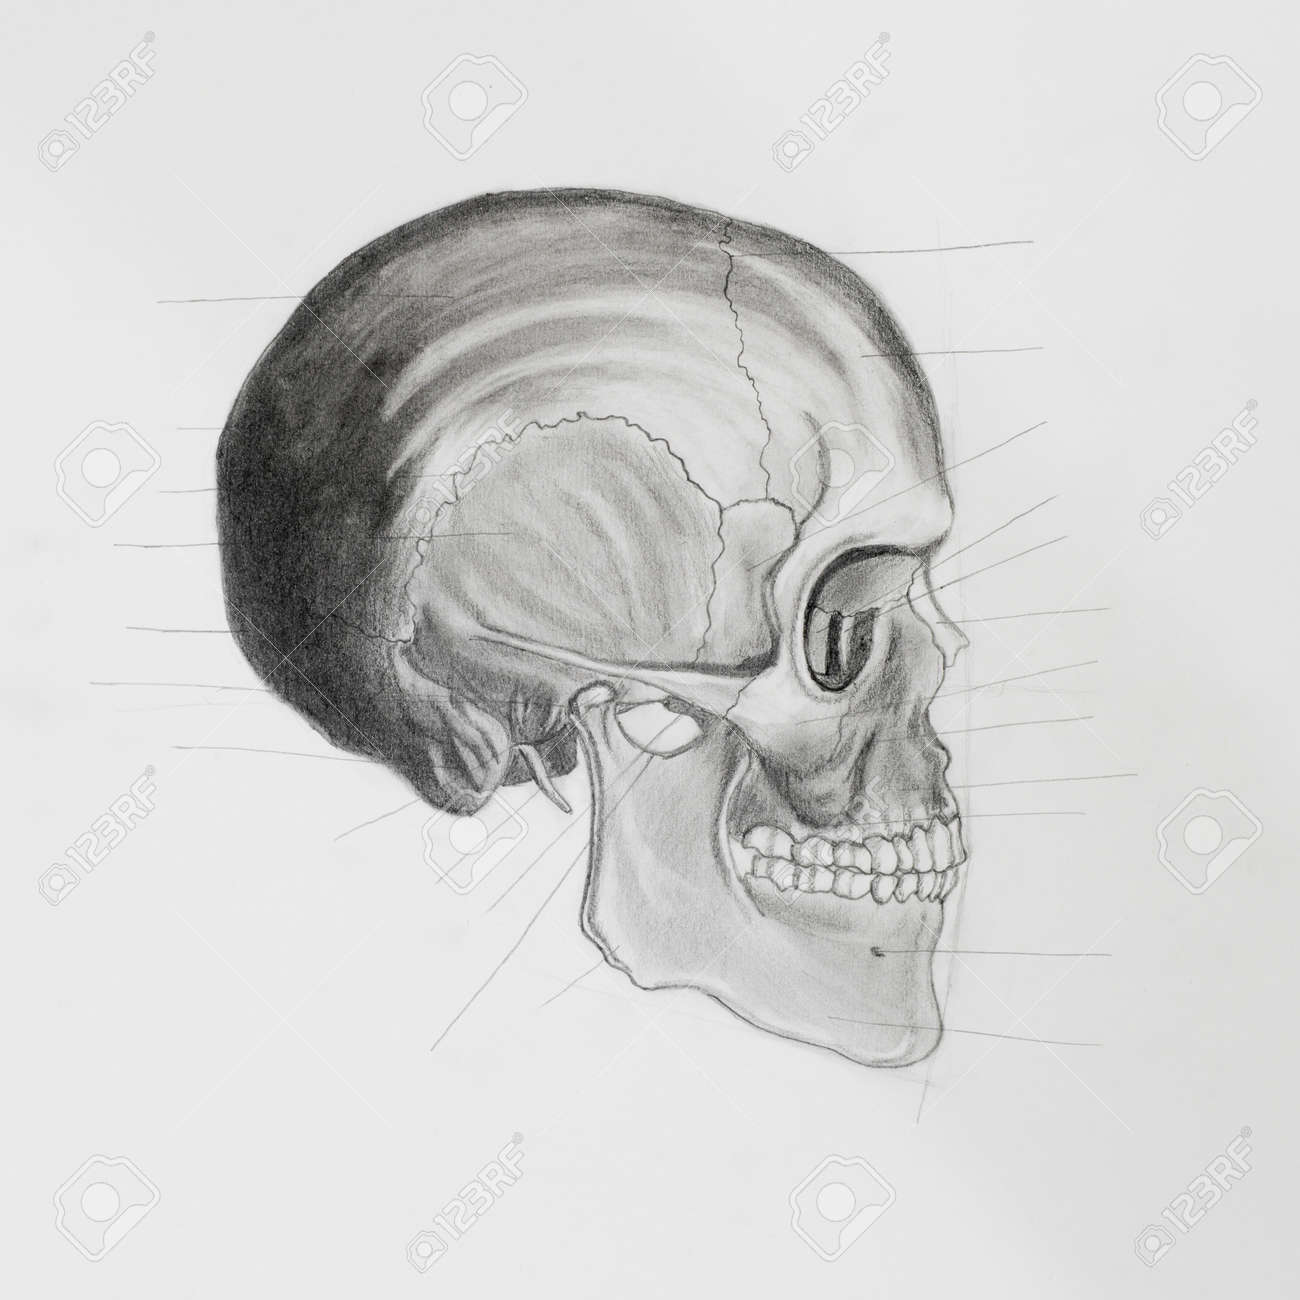 hand drawn pencil illustratin, side view of human skull with directive lines pointing at bone parts, on white paper Stock Photo - 23653498